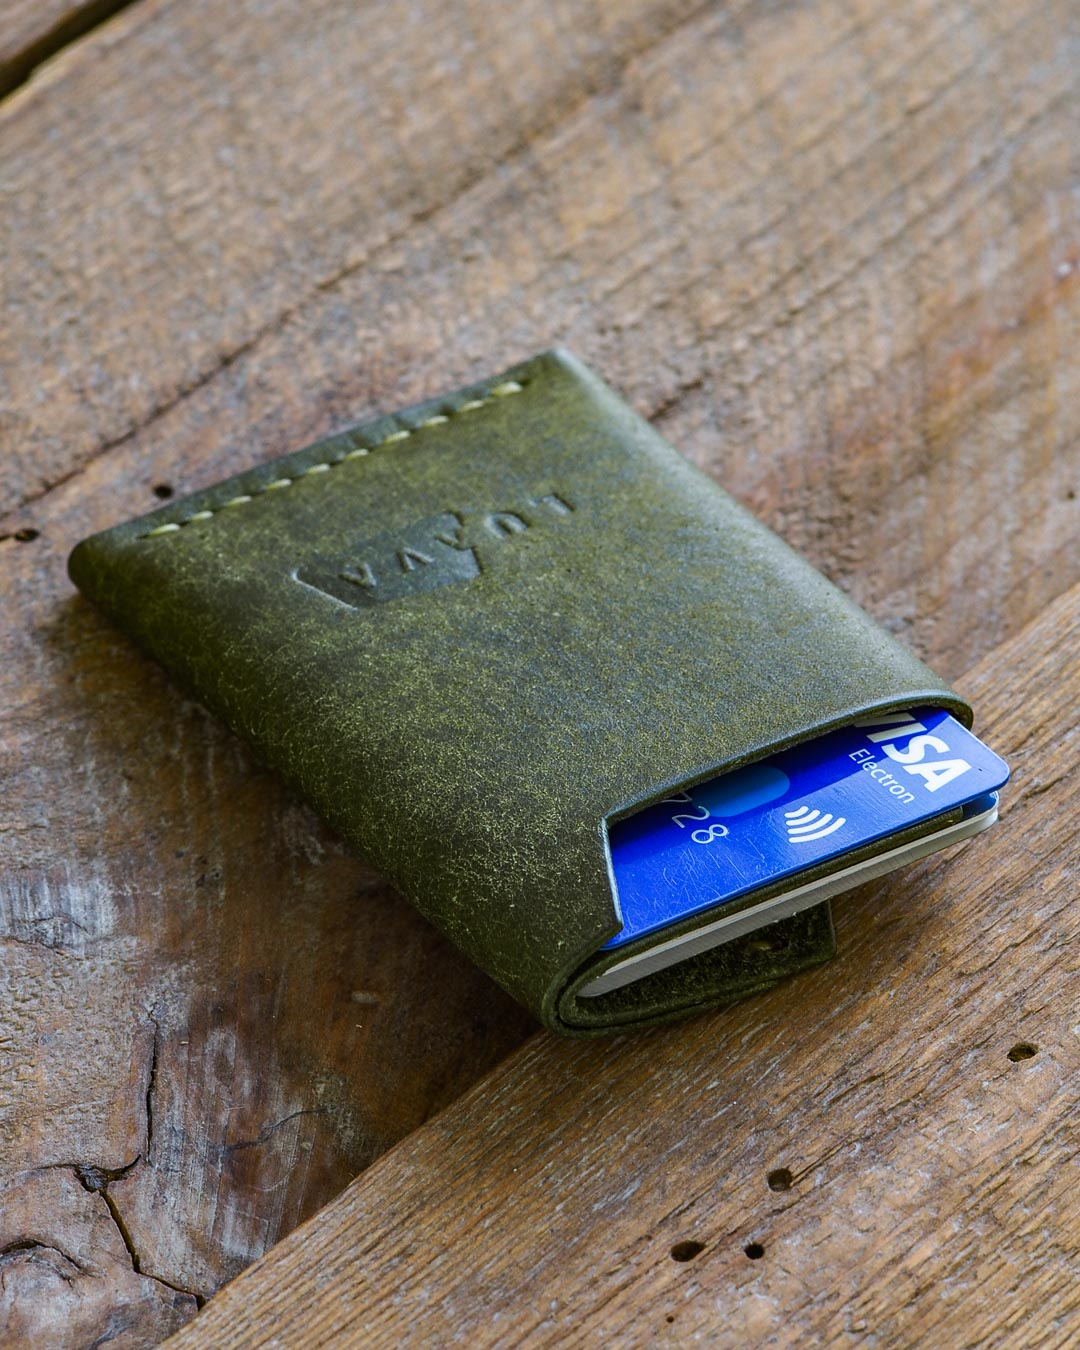 Luava handmade leather wallet handcrafted card holder cardholder made in finland vortex pueblo olive back in use angle